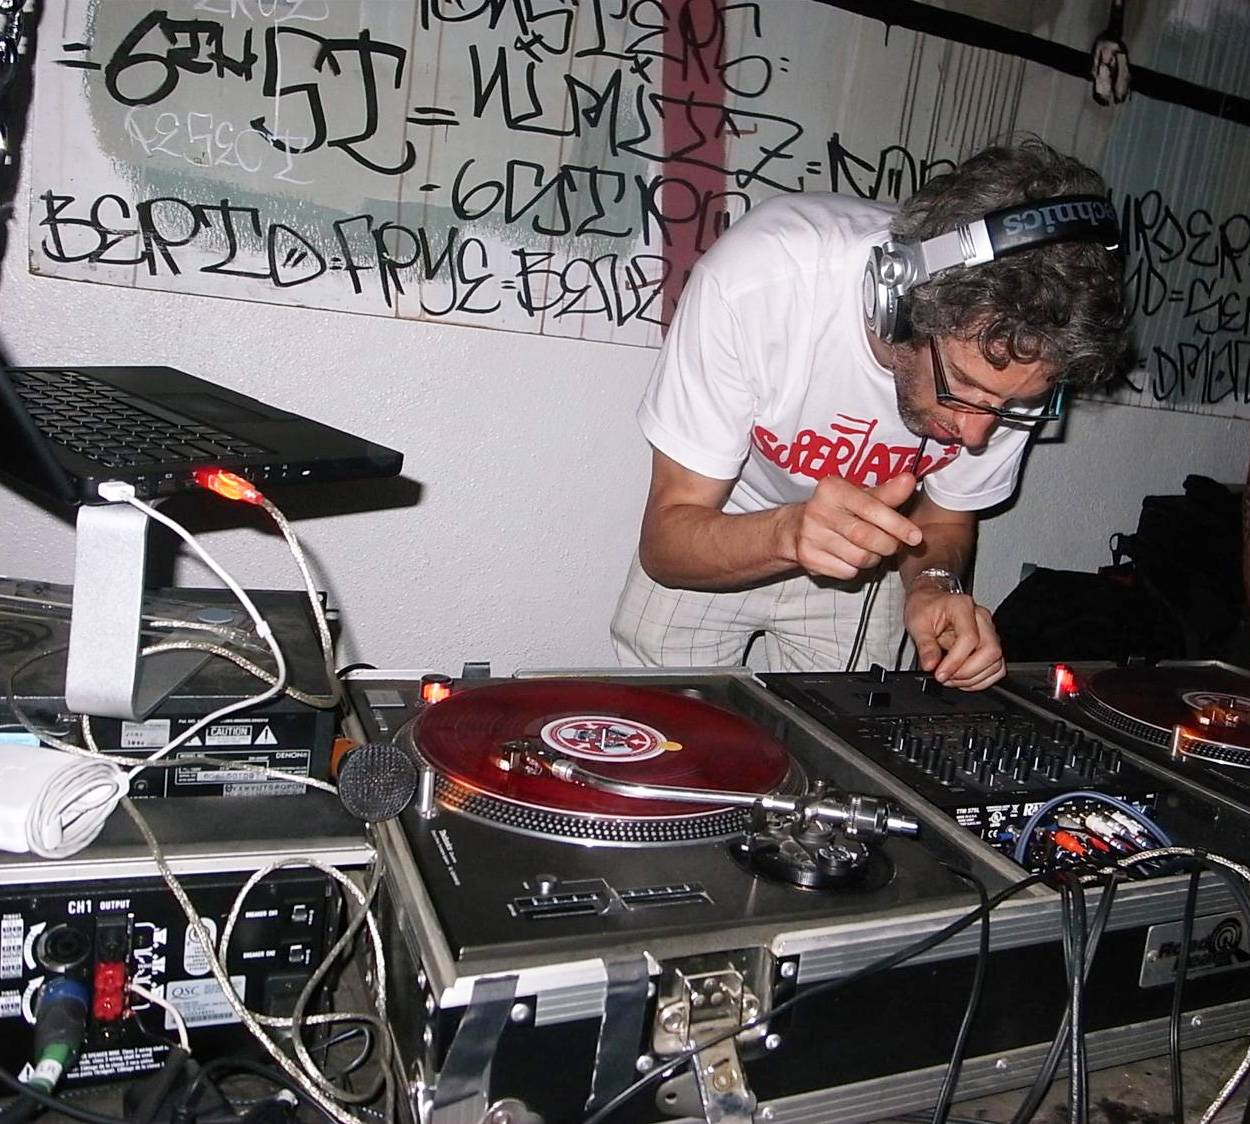 24. DJ Stretch Armstrong - As the namesake of New York's revered Stretch Armstrong Show, Stretch ruled rap's underground throughout the '90s, helping to launch the careers of the Notorious B.I.G., Mobb Deep, Redman, Big L and other Big Apple street legends.  (Photo: Facebook)